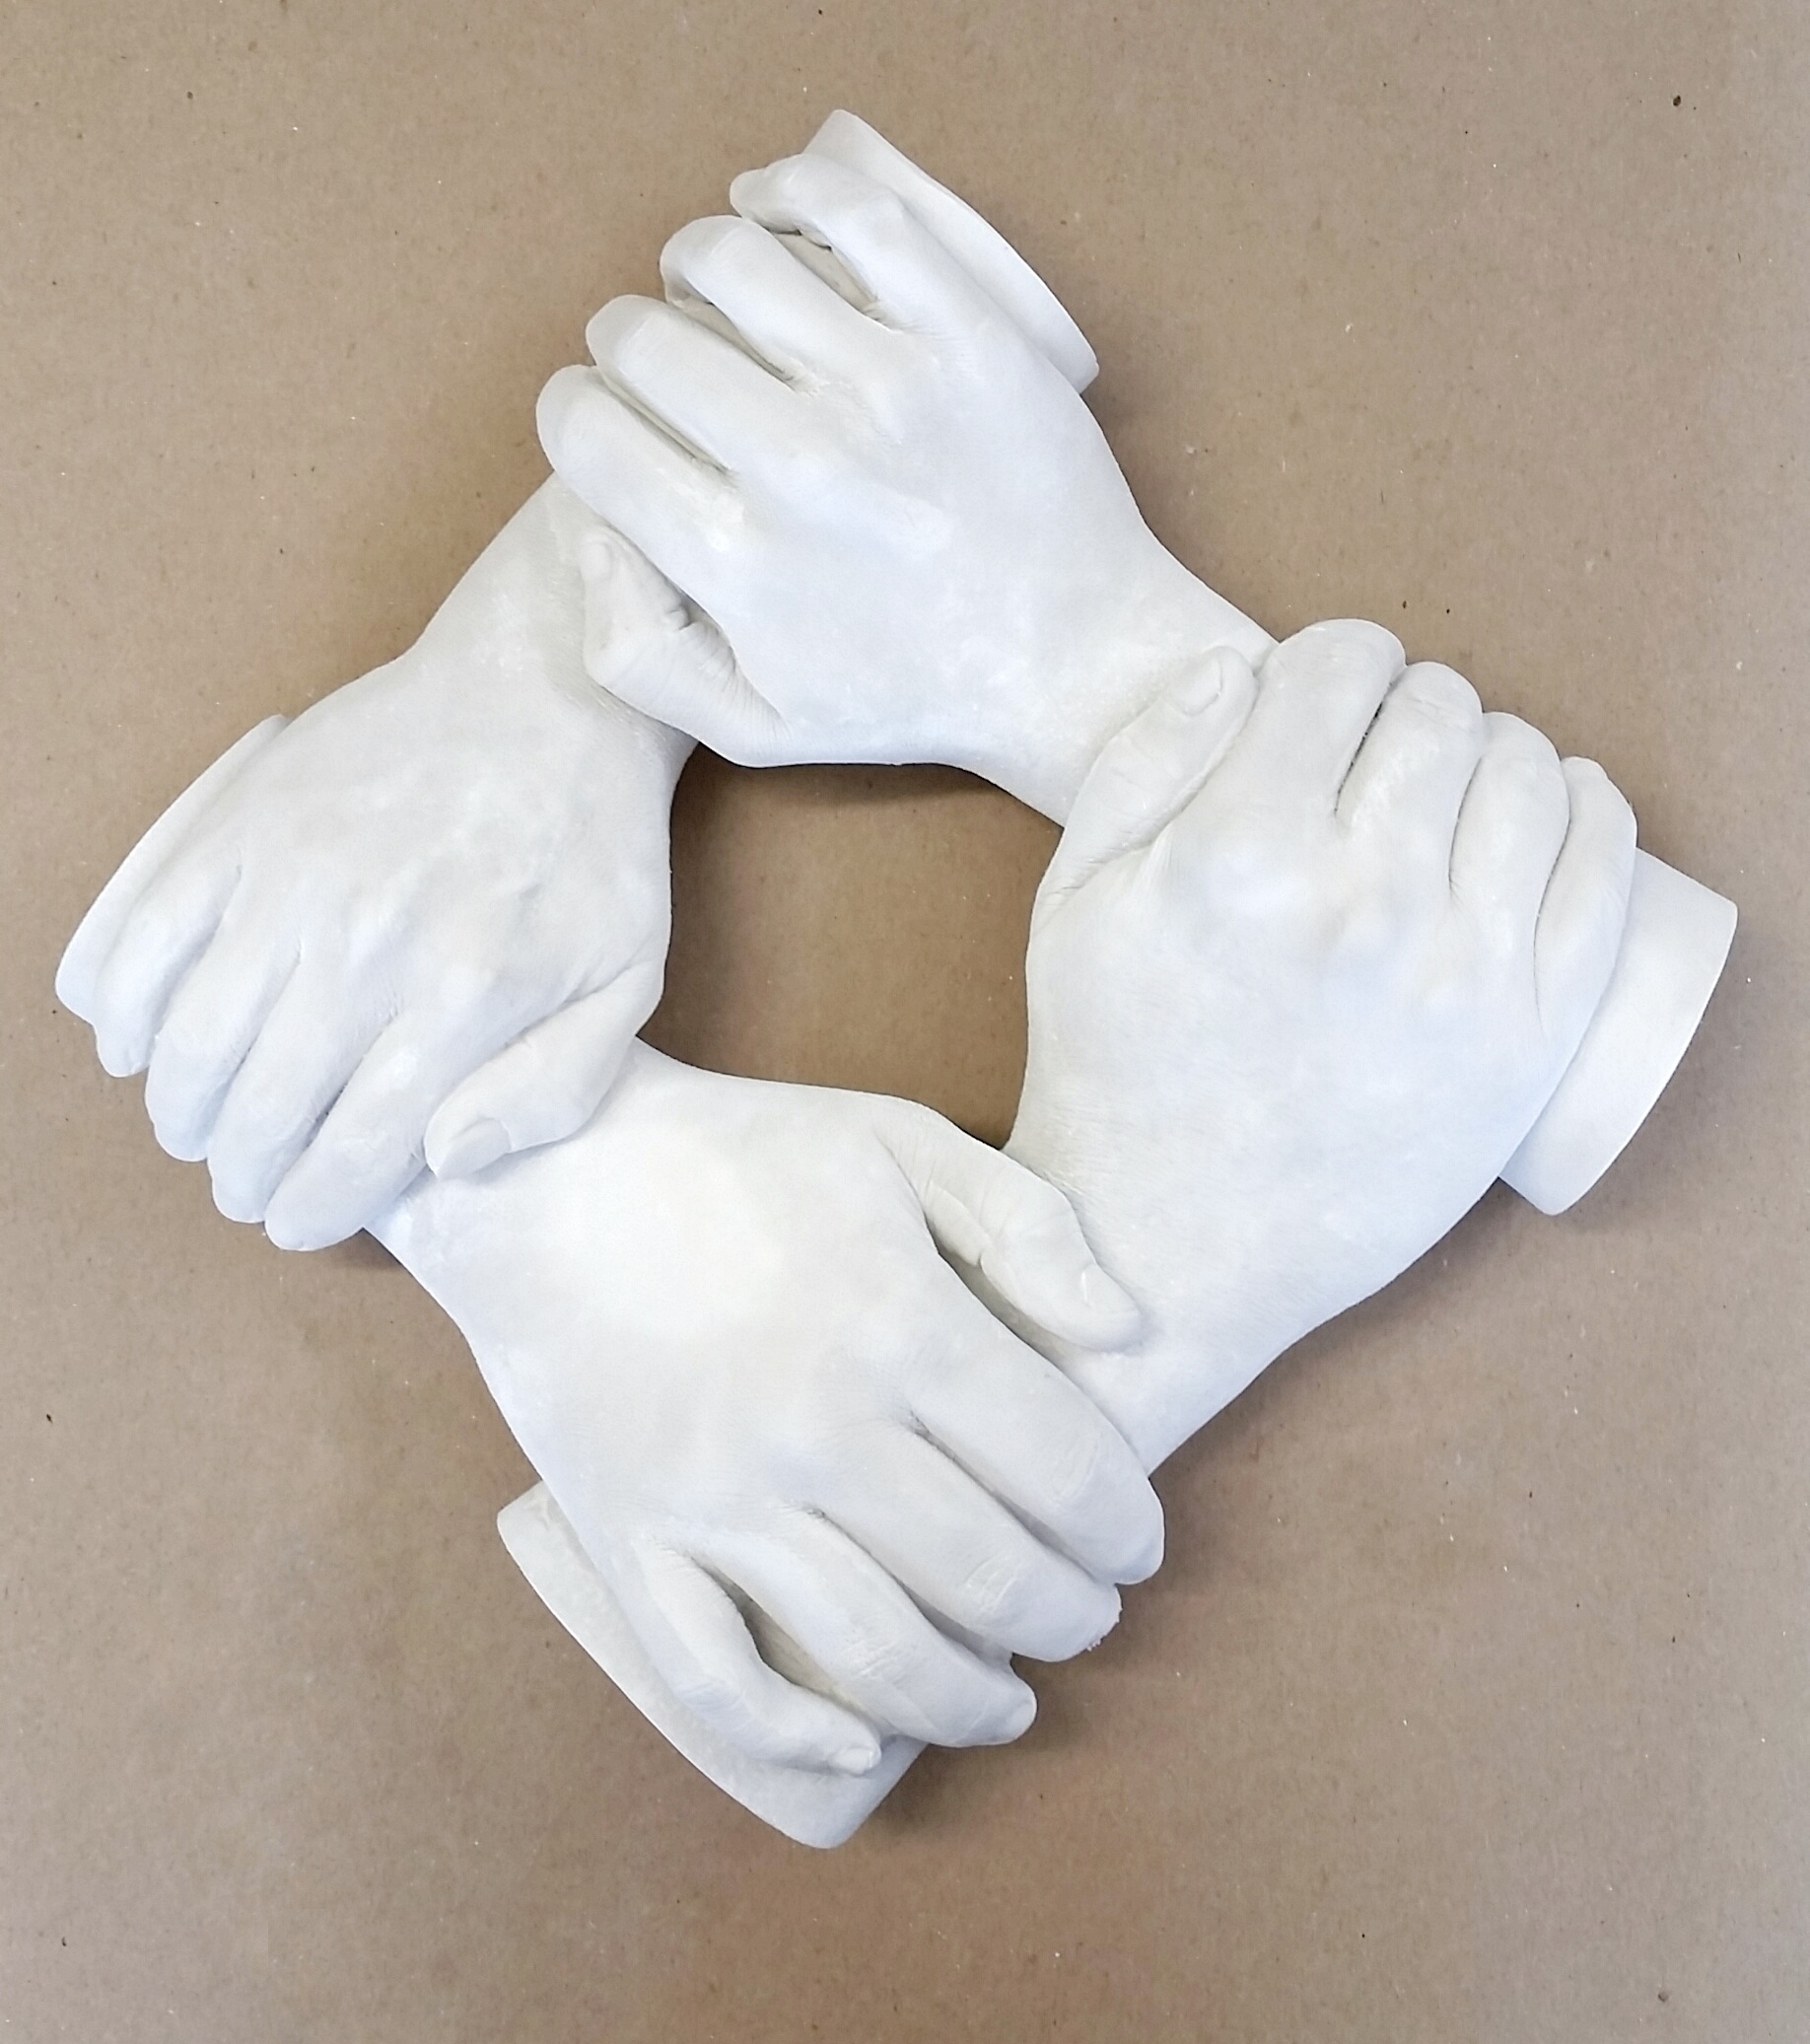 $220 -- Four Hands (adult or child)